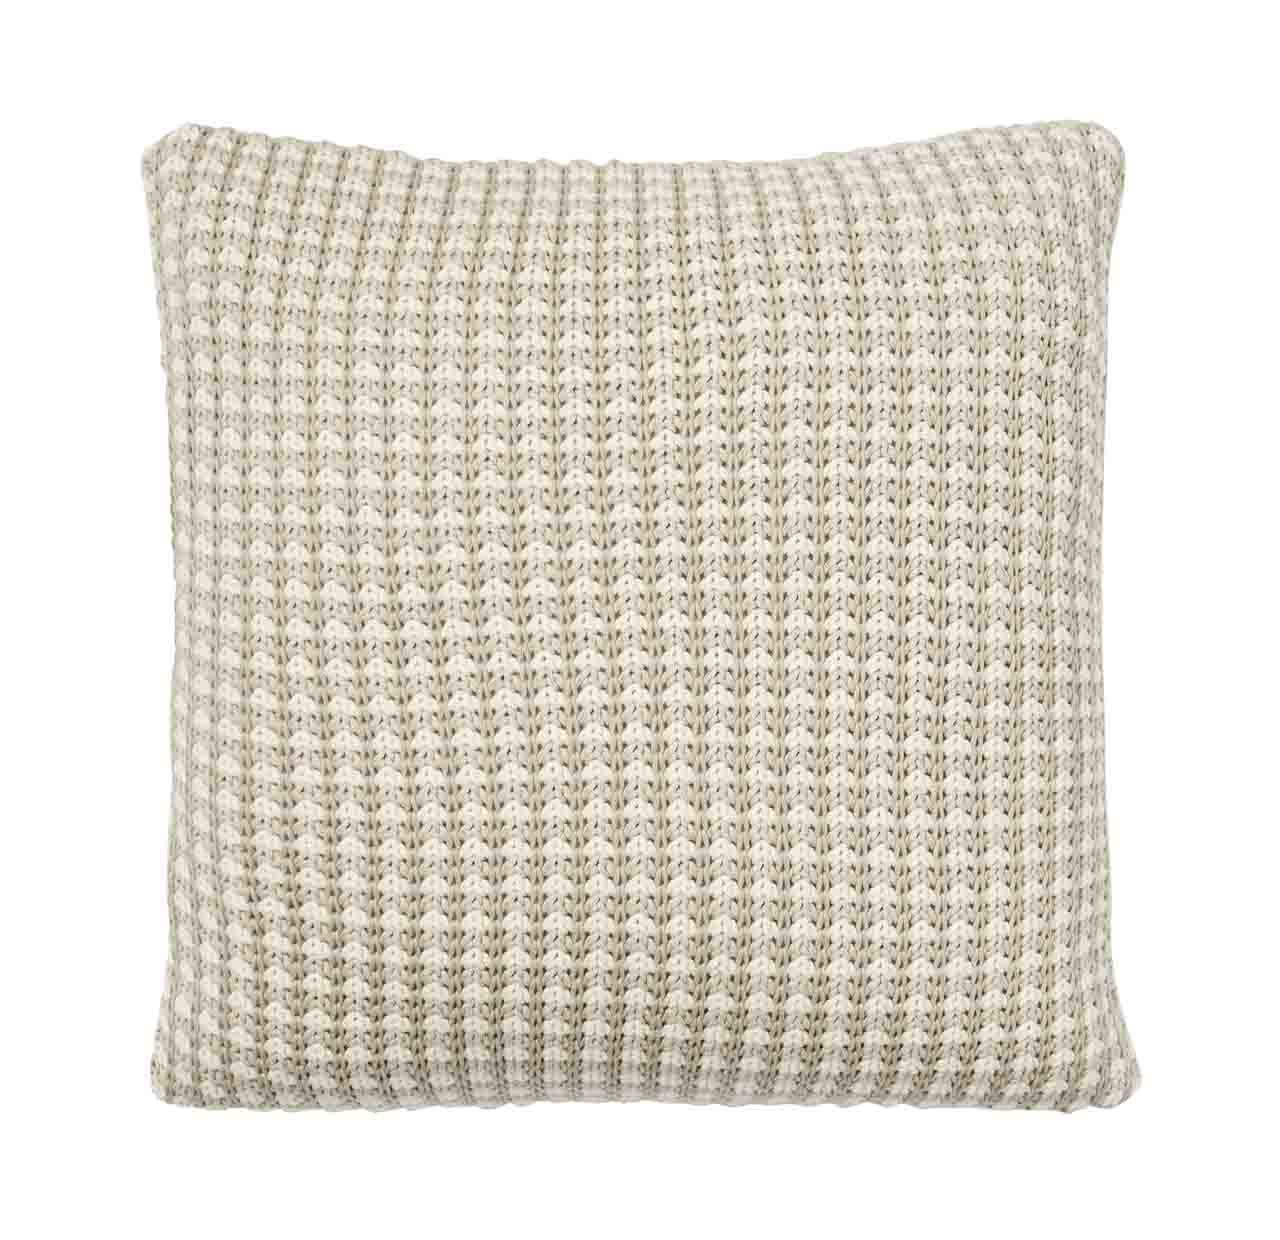 Sausalito Knitted Cushion - Sandstorm